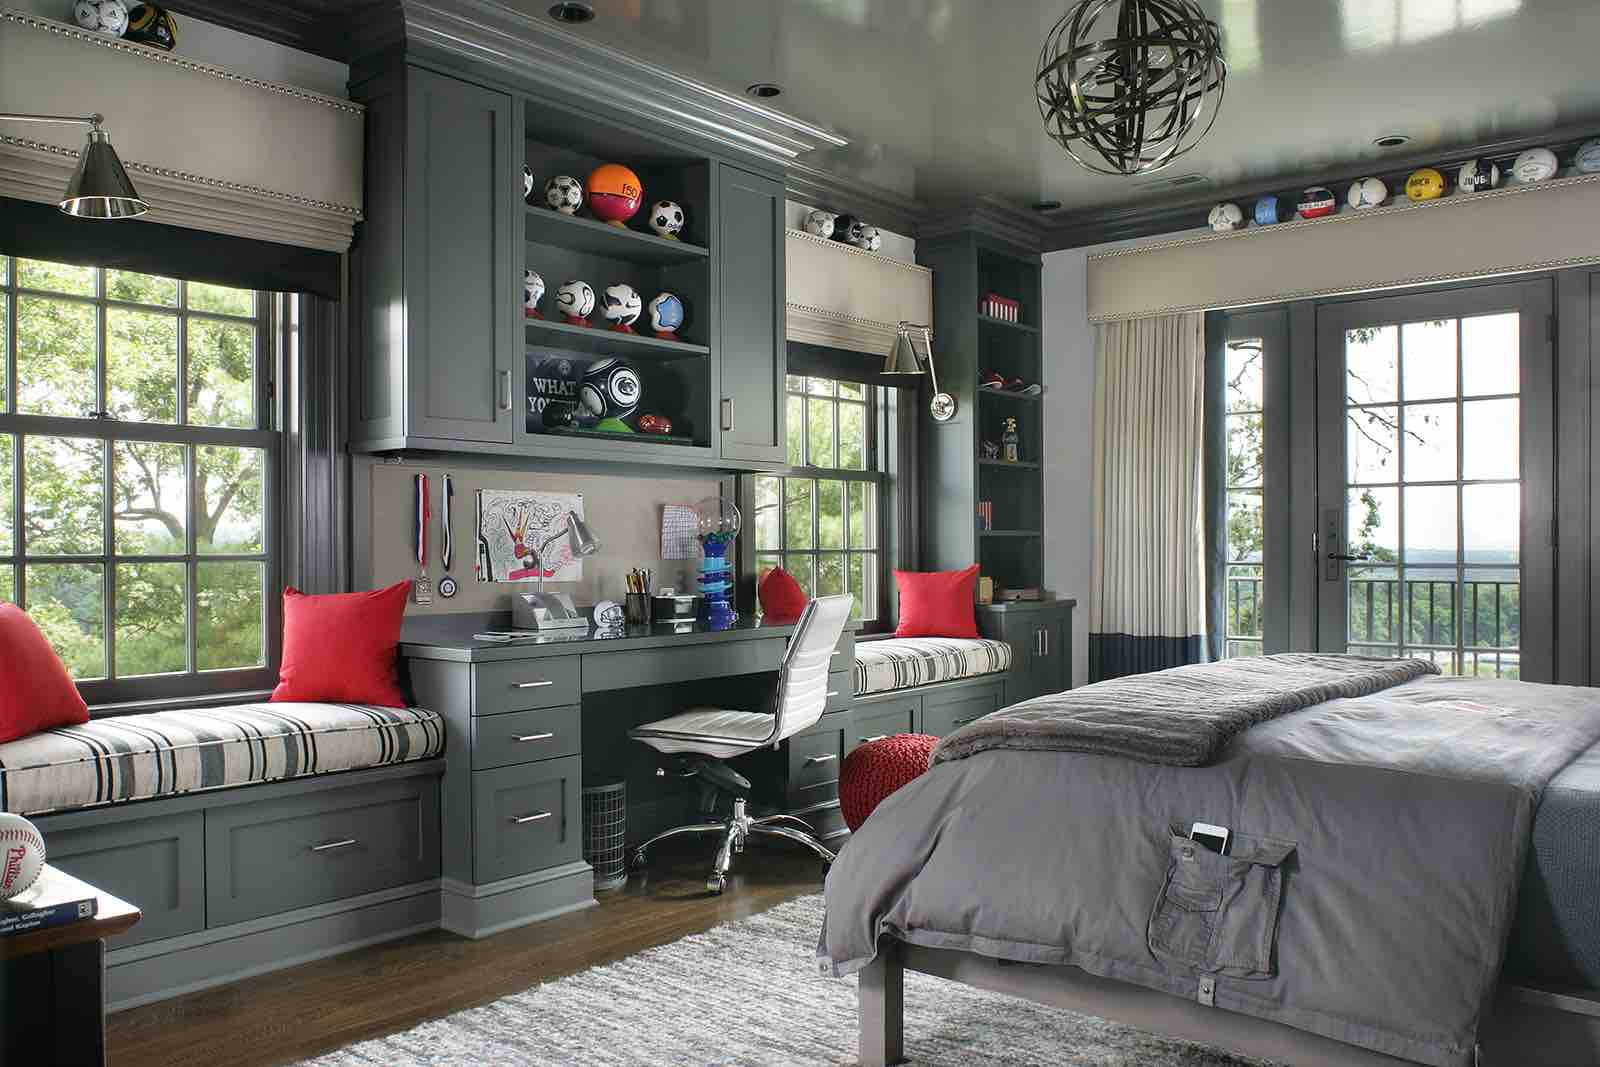 Decorating the dream dorm room valerie grant interiors for Decorating your apartment